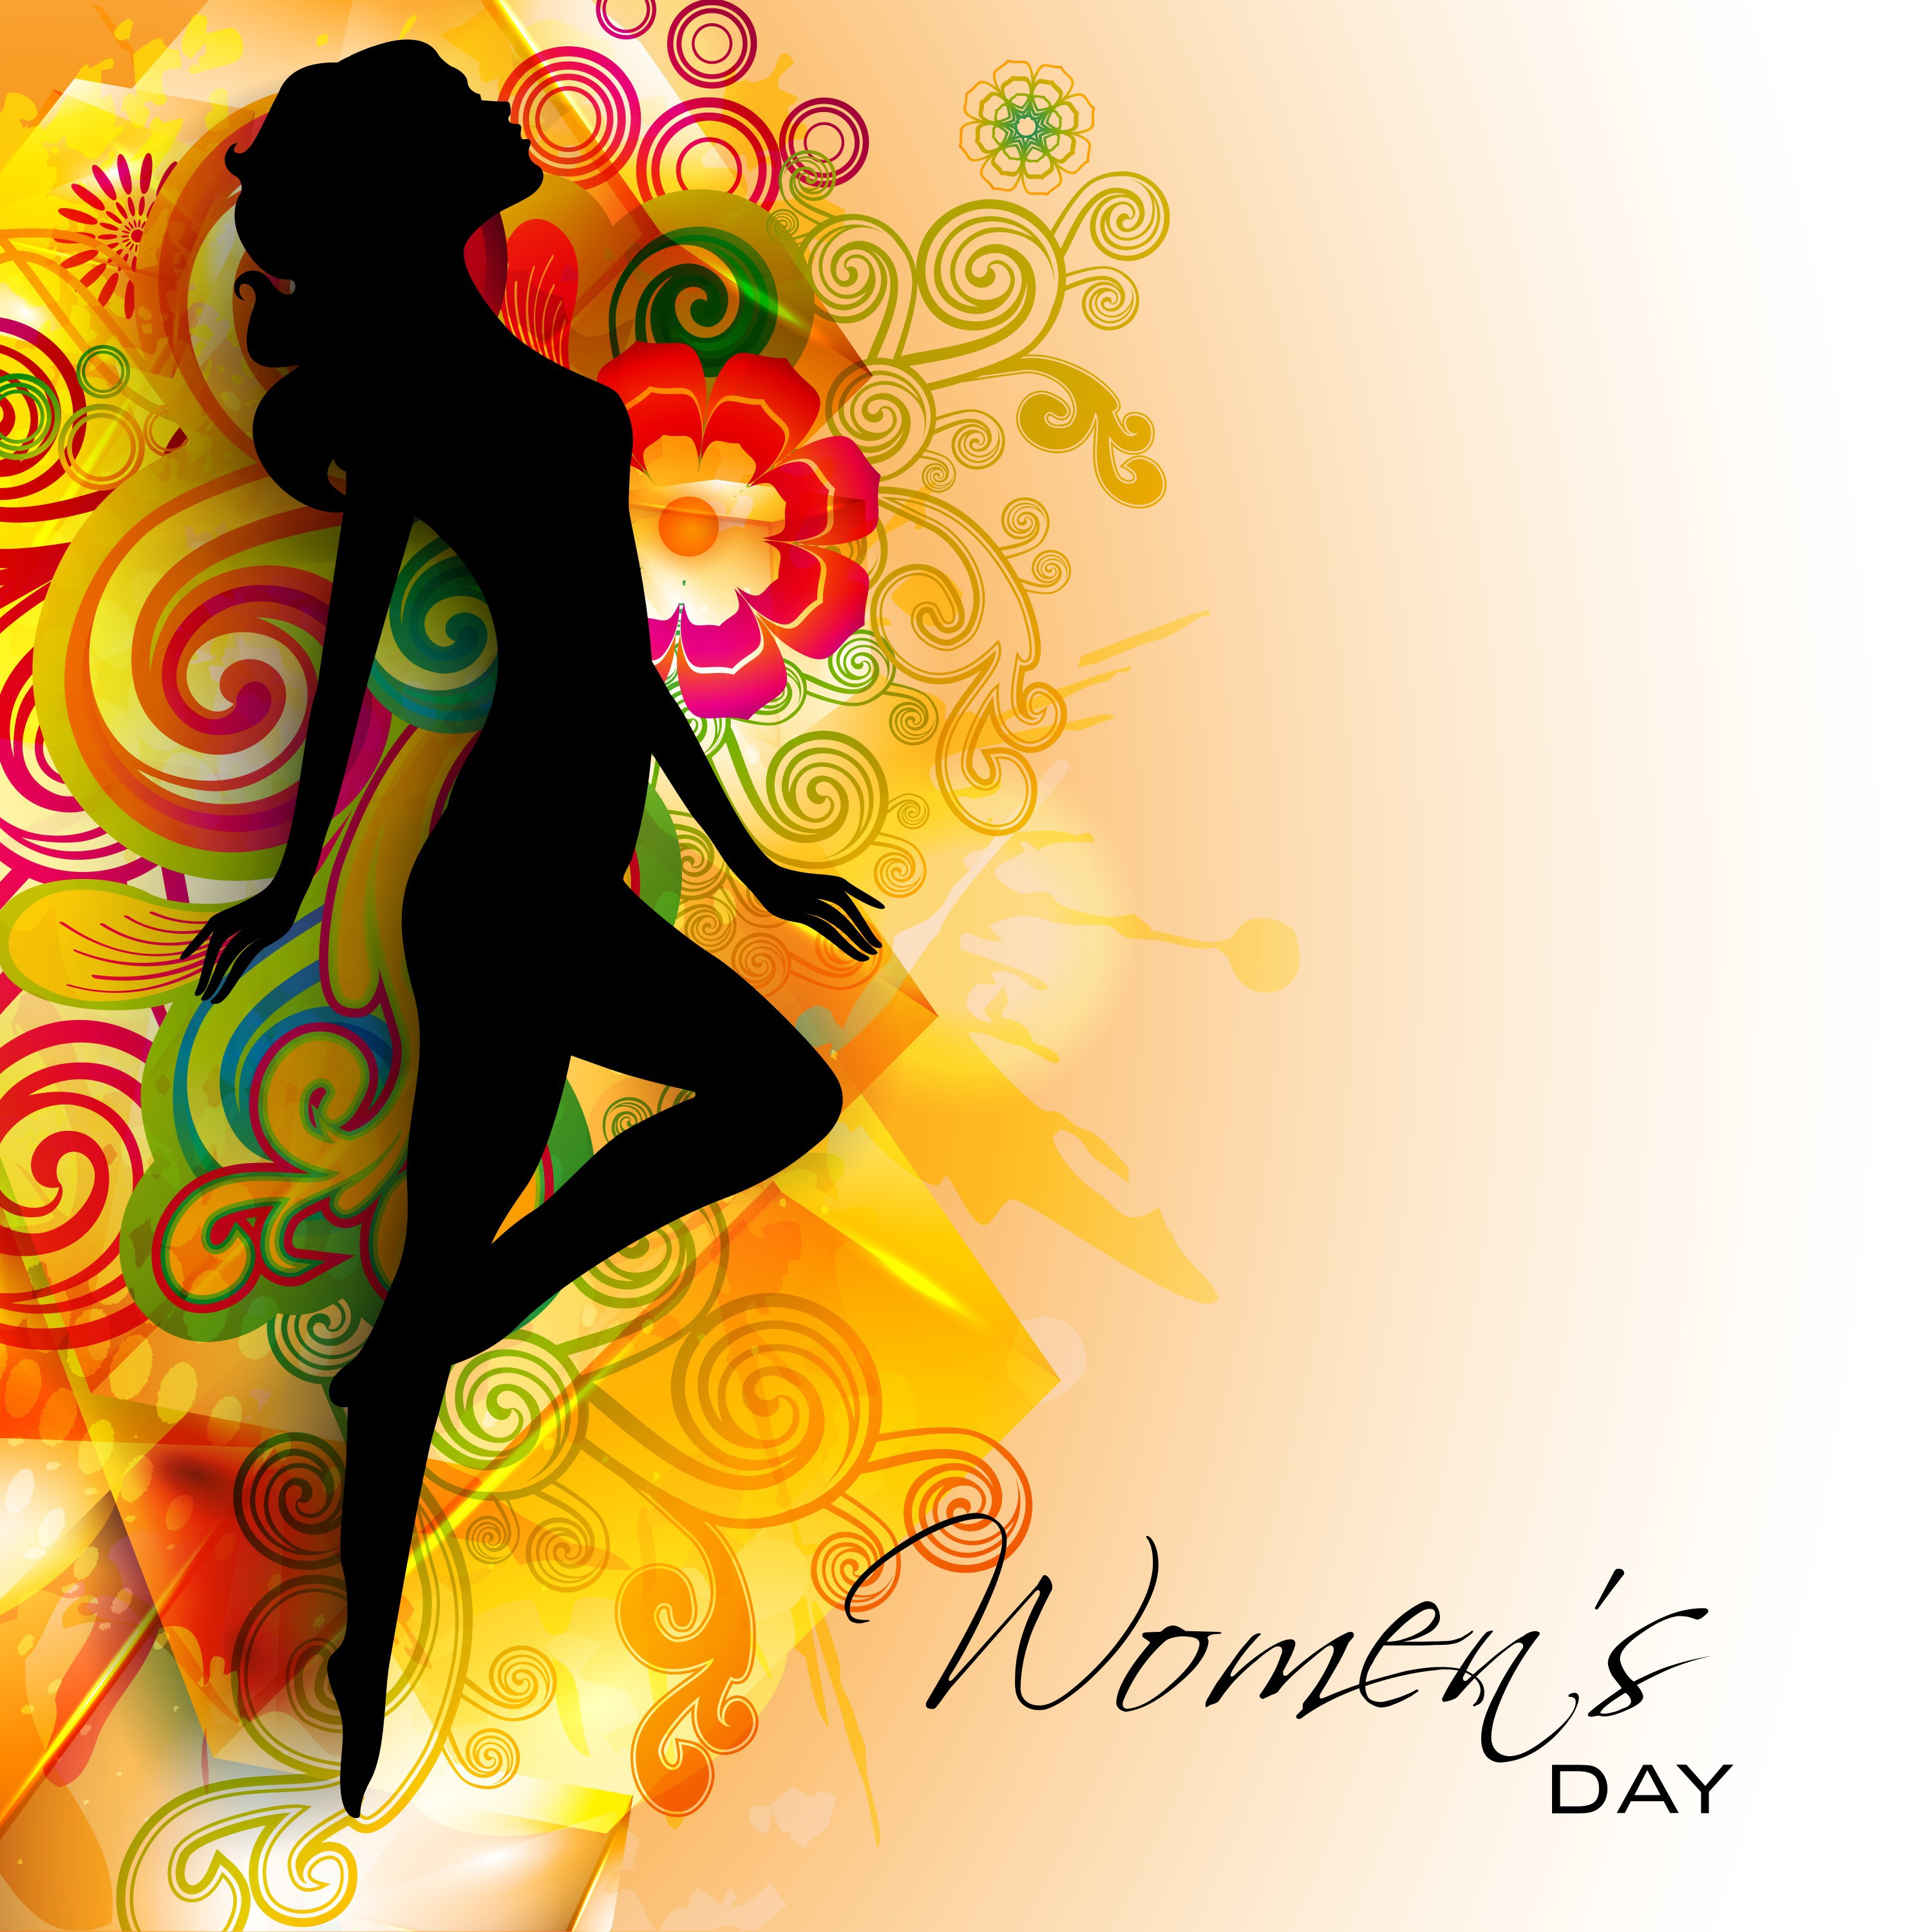 happy-womens-day-greeting-card_m1nzs5do_l